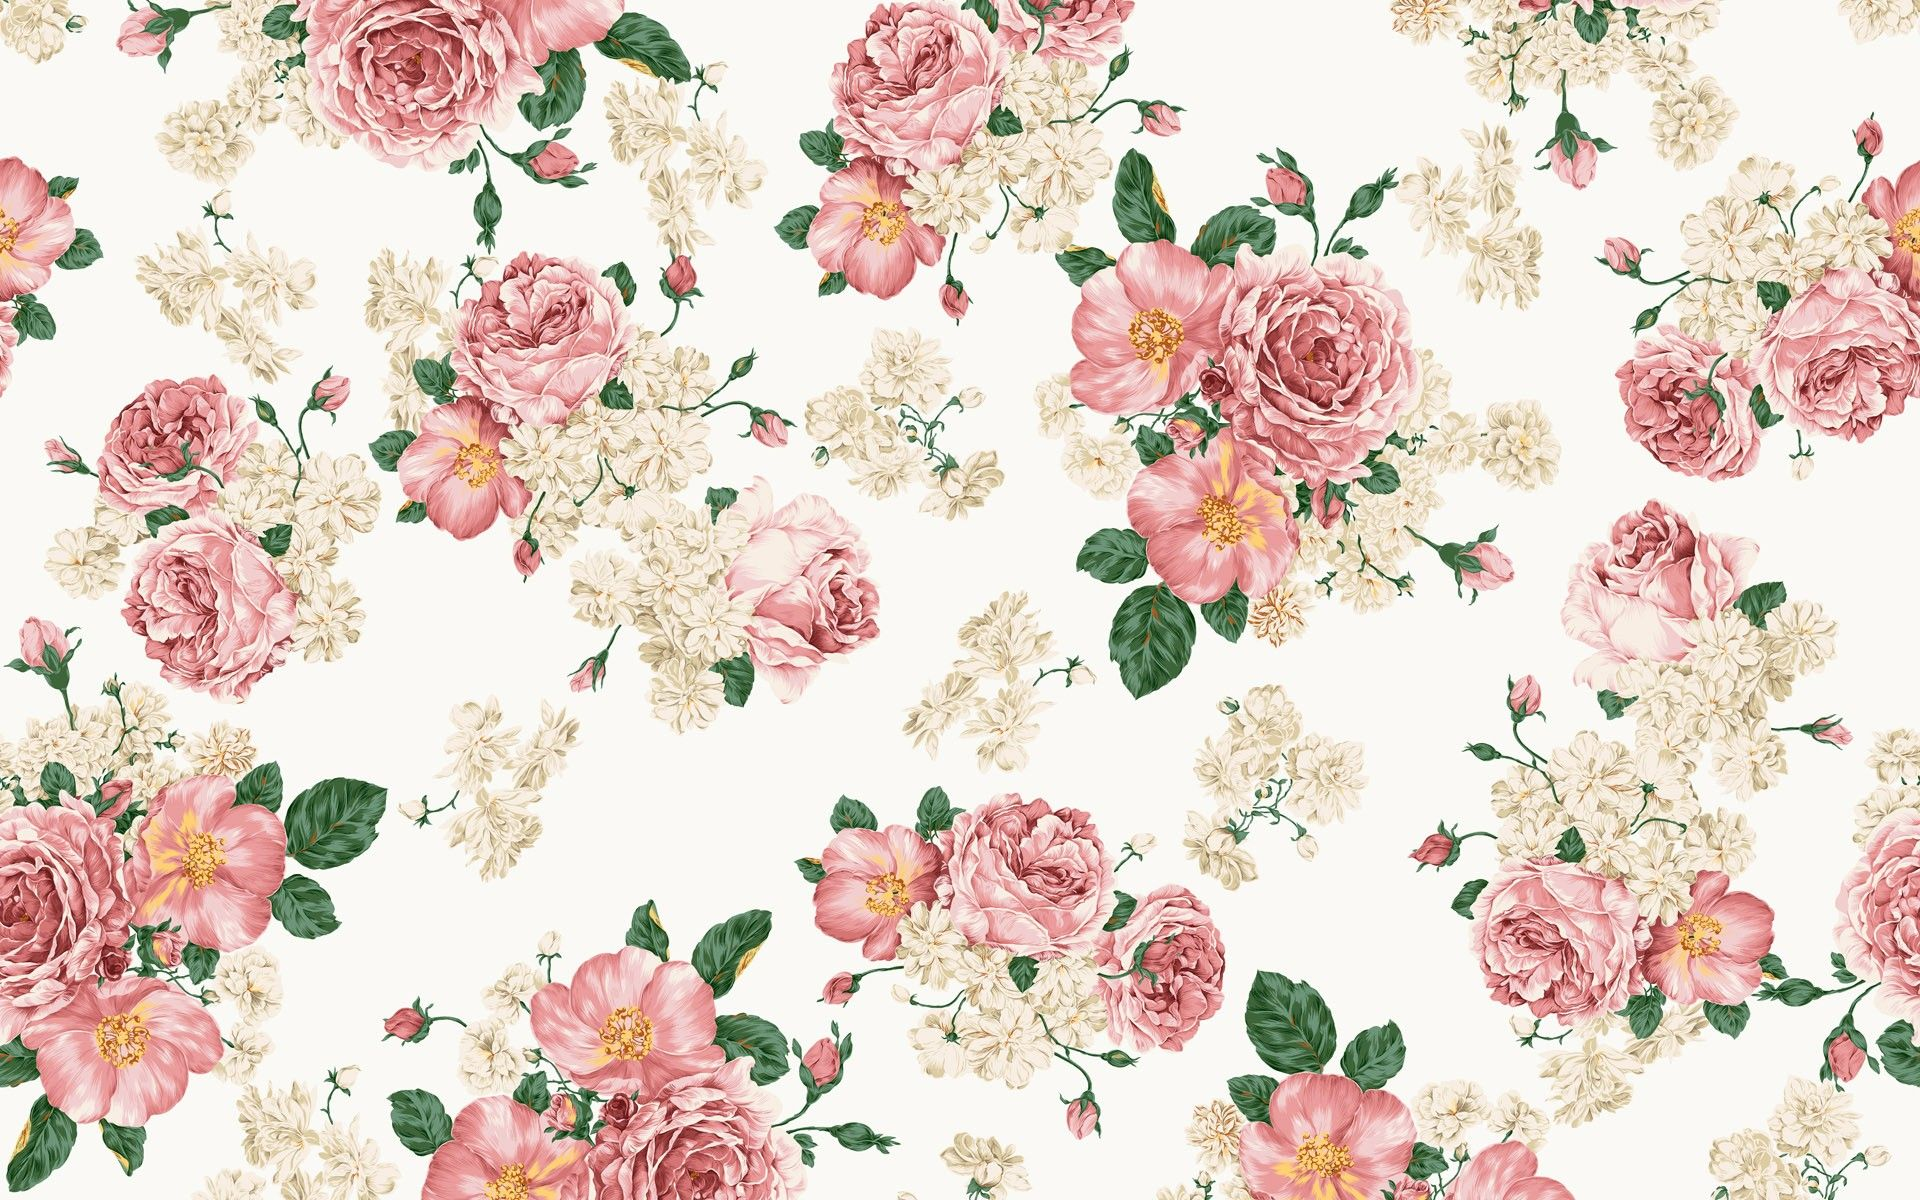 Vintage Lace Floral Iphone Wallpapers Top Free Vintage Lace Floral